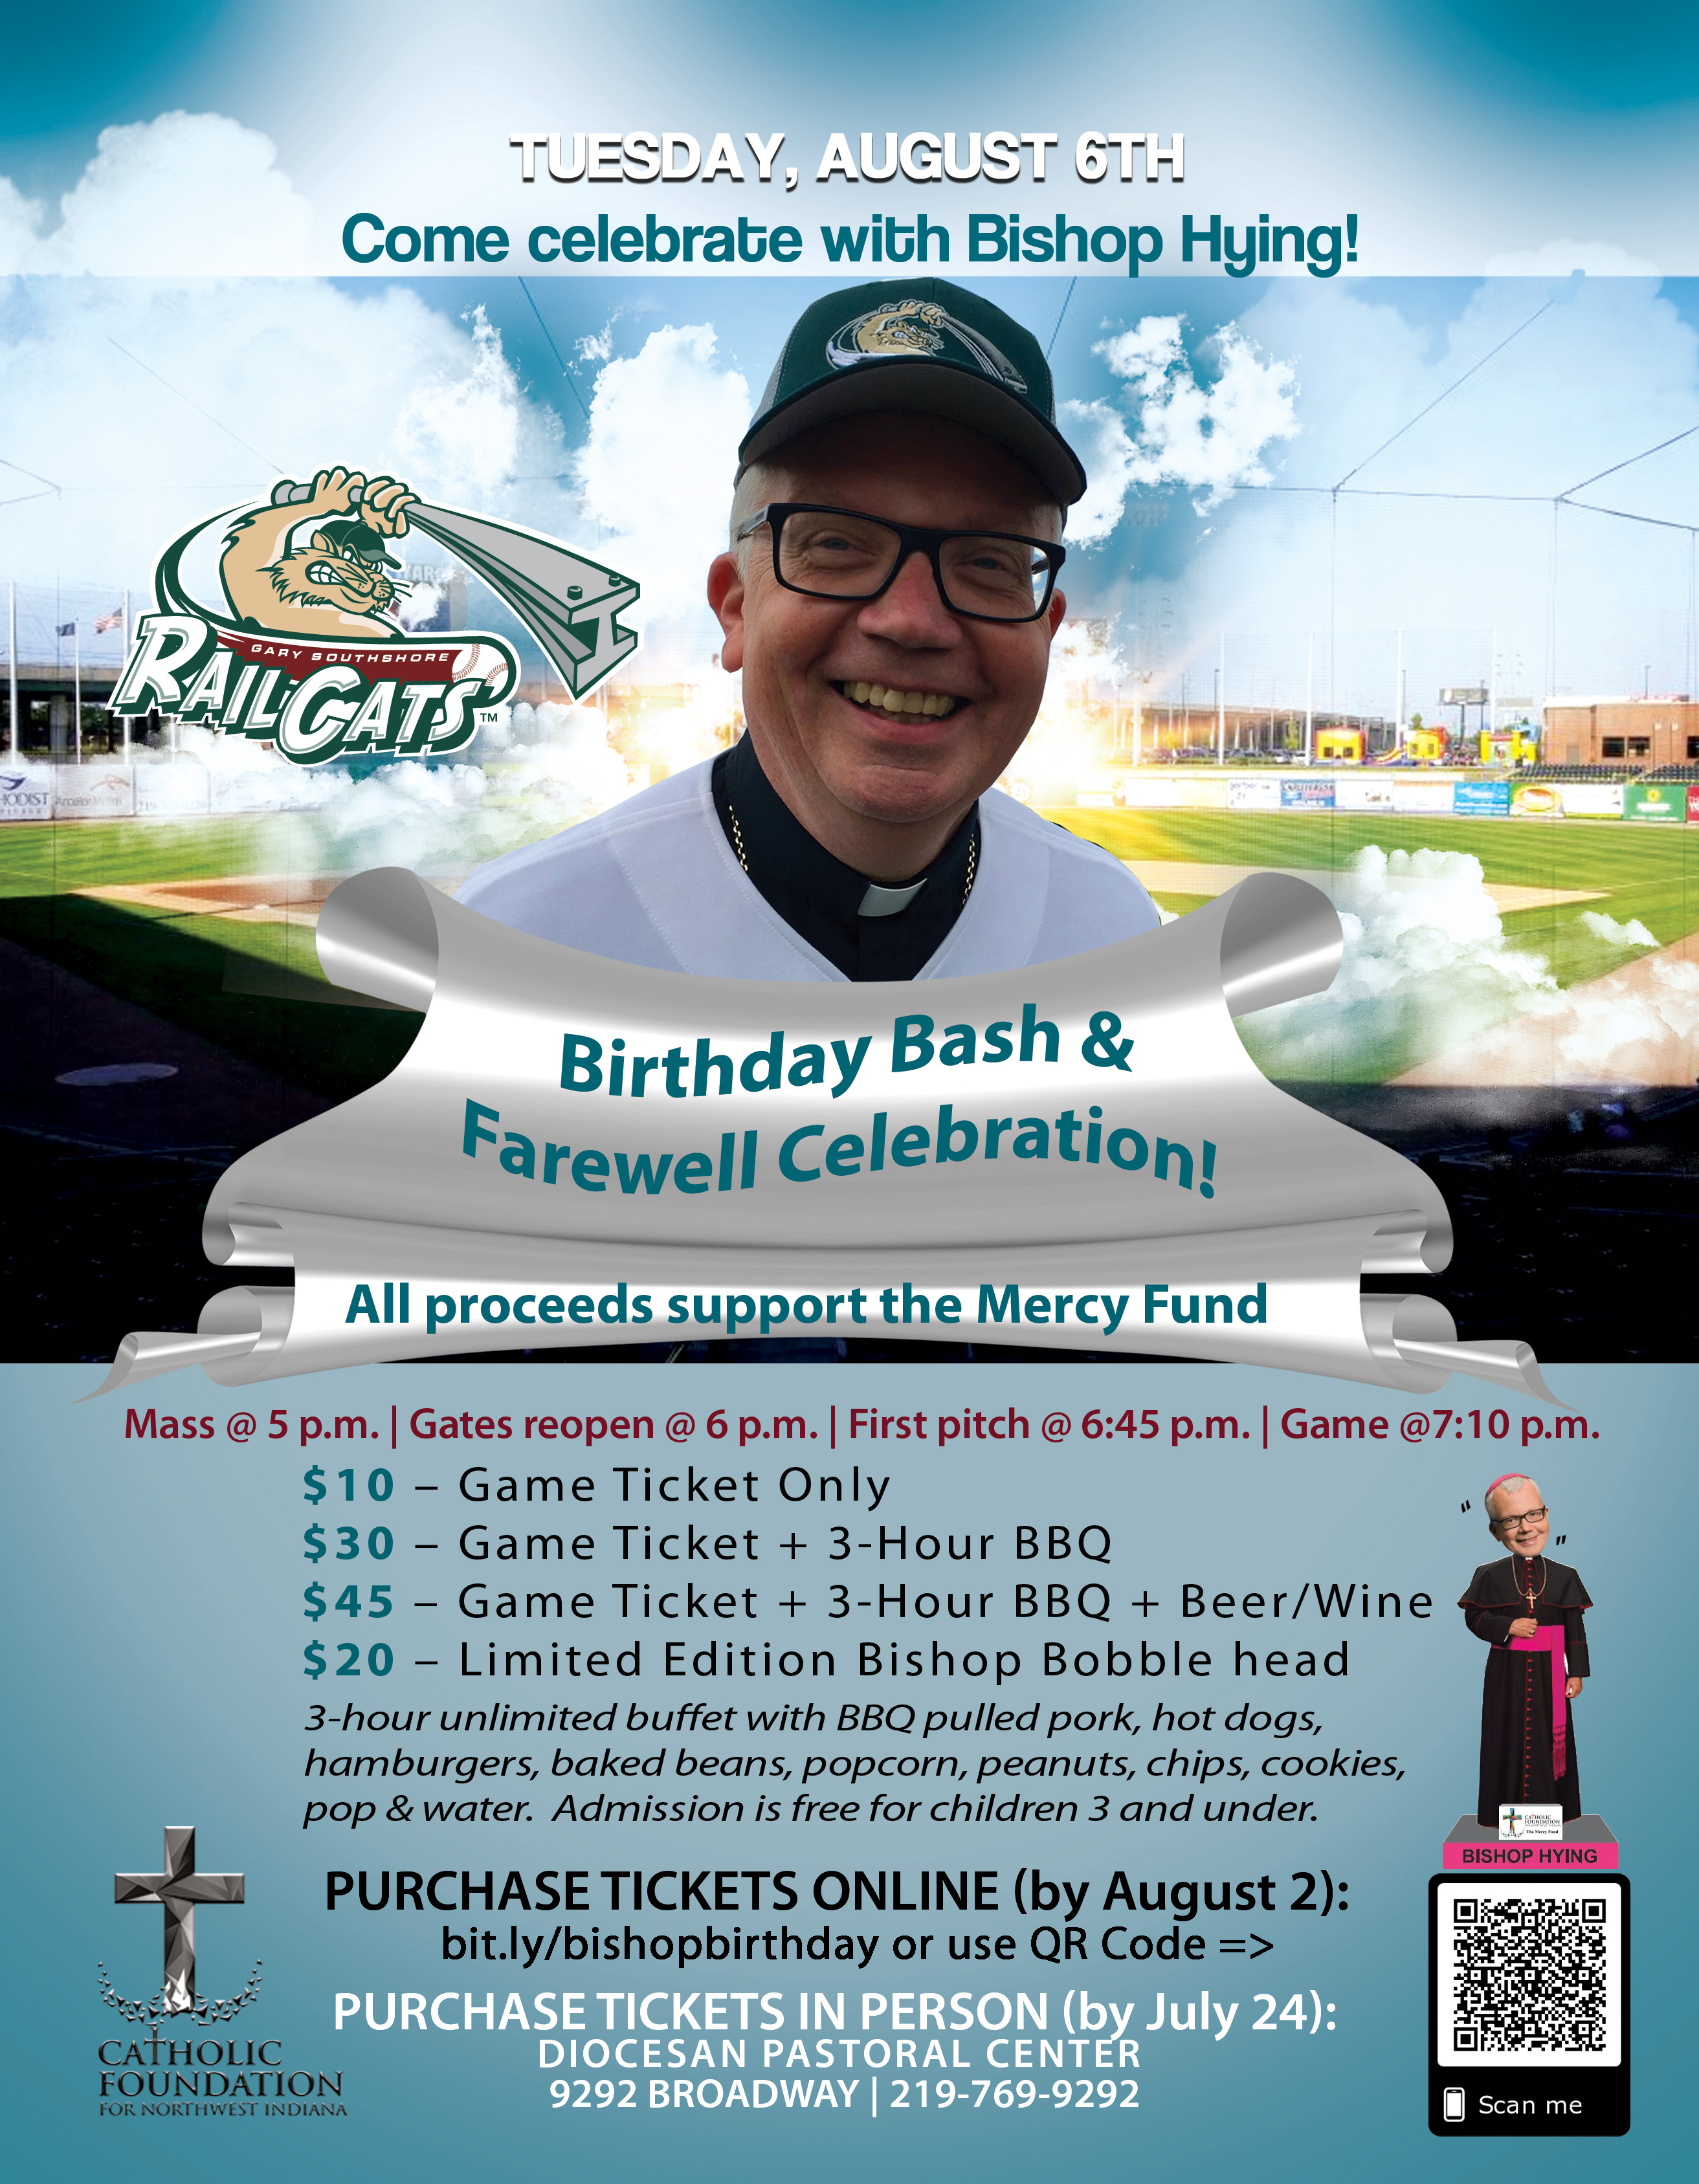 Birthday Bash & Farewell Celebration for Bishop Hying